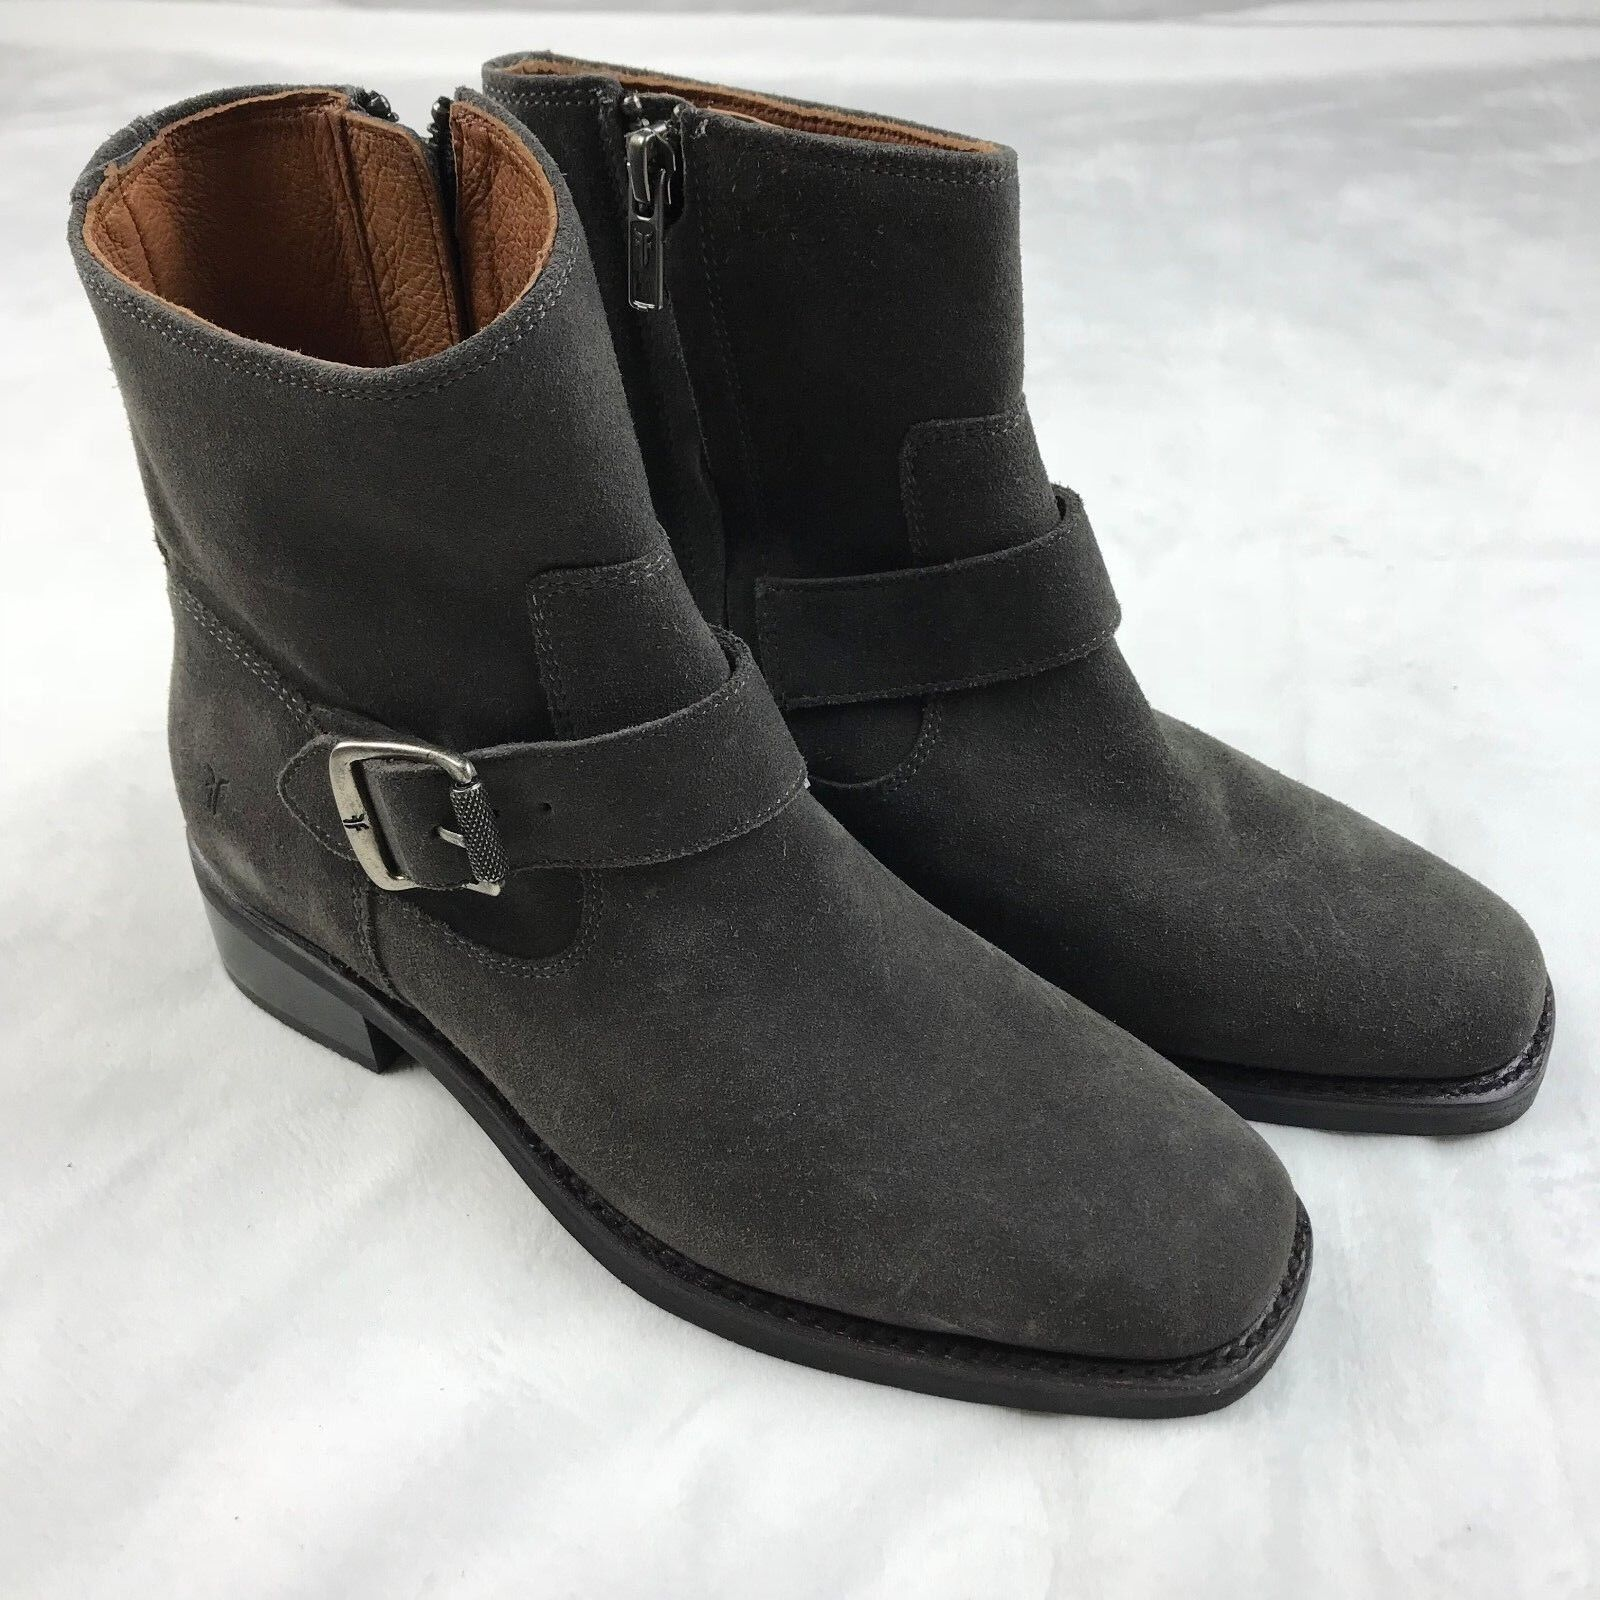 Frye Hannah Engineer Suede Boot in Smoke Size 6.5 NEW  348